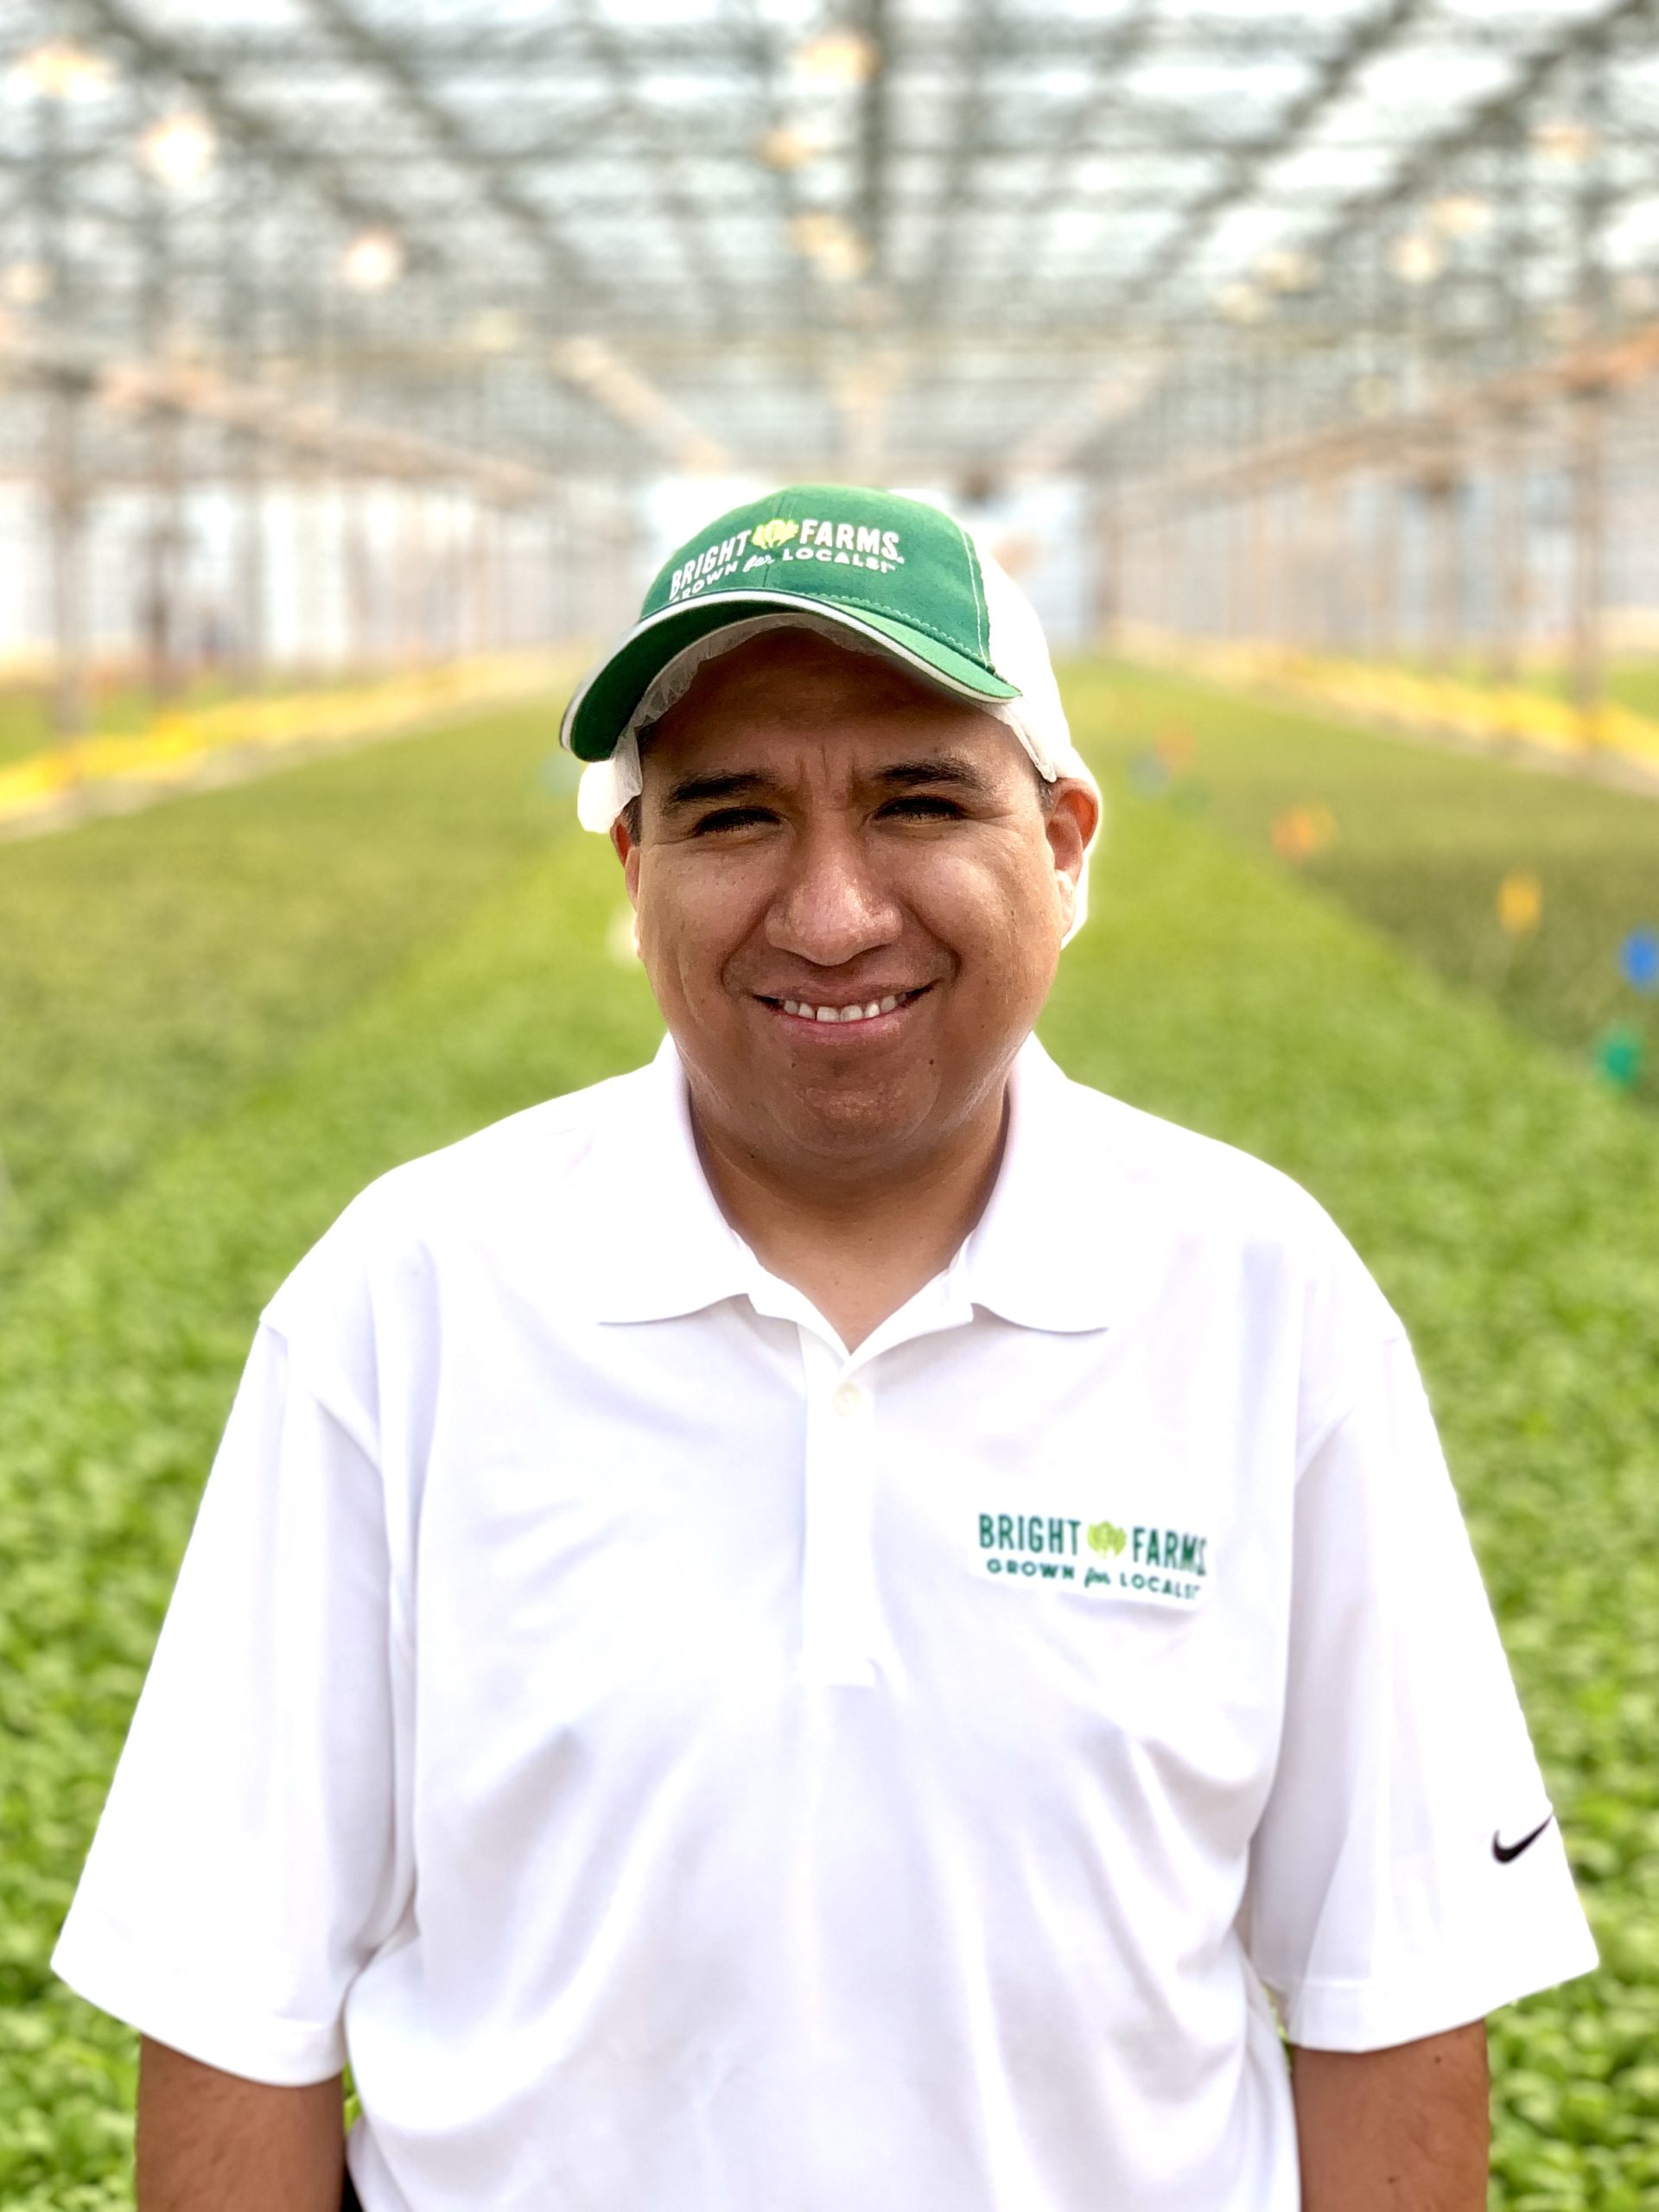 Jaime Blacutt Production Manager BrightFarms WDC Greenhouse